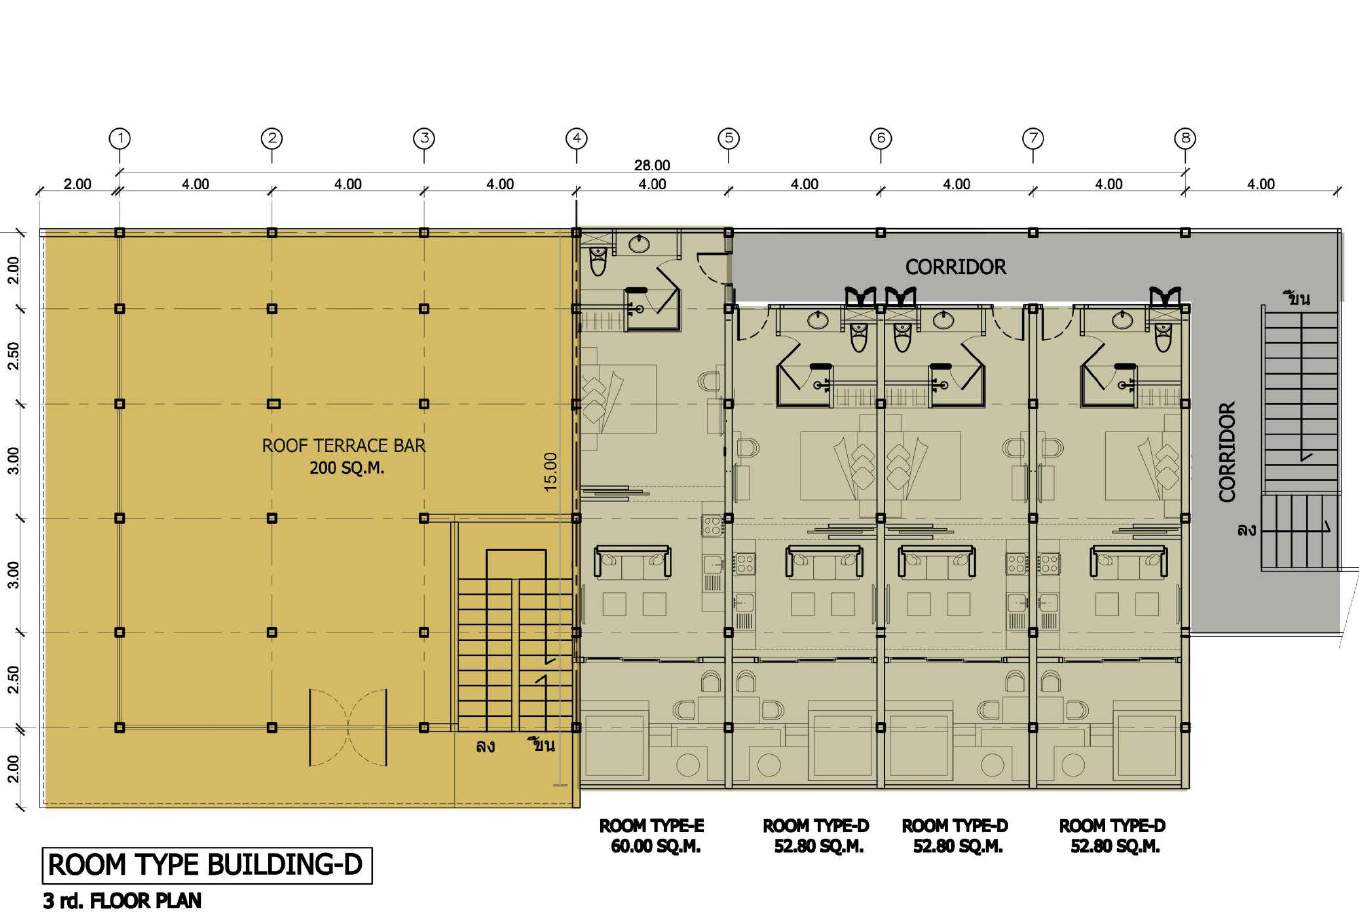 Phuket Holiday Services The Bay And The Beach Club Floor Plan Building D 3rd Floor